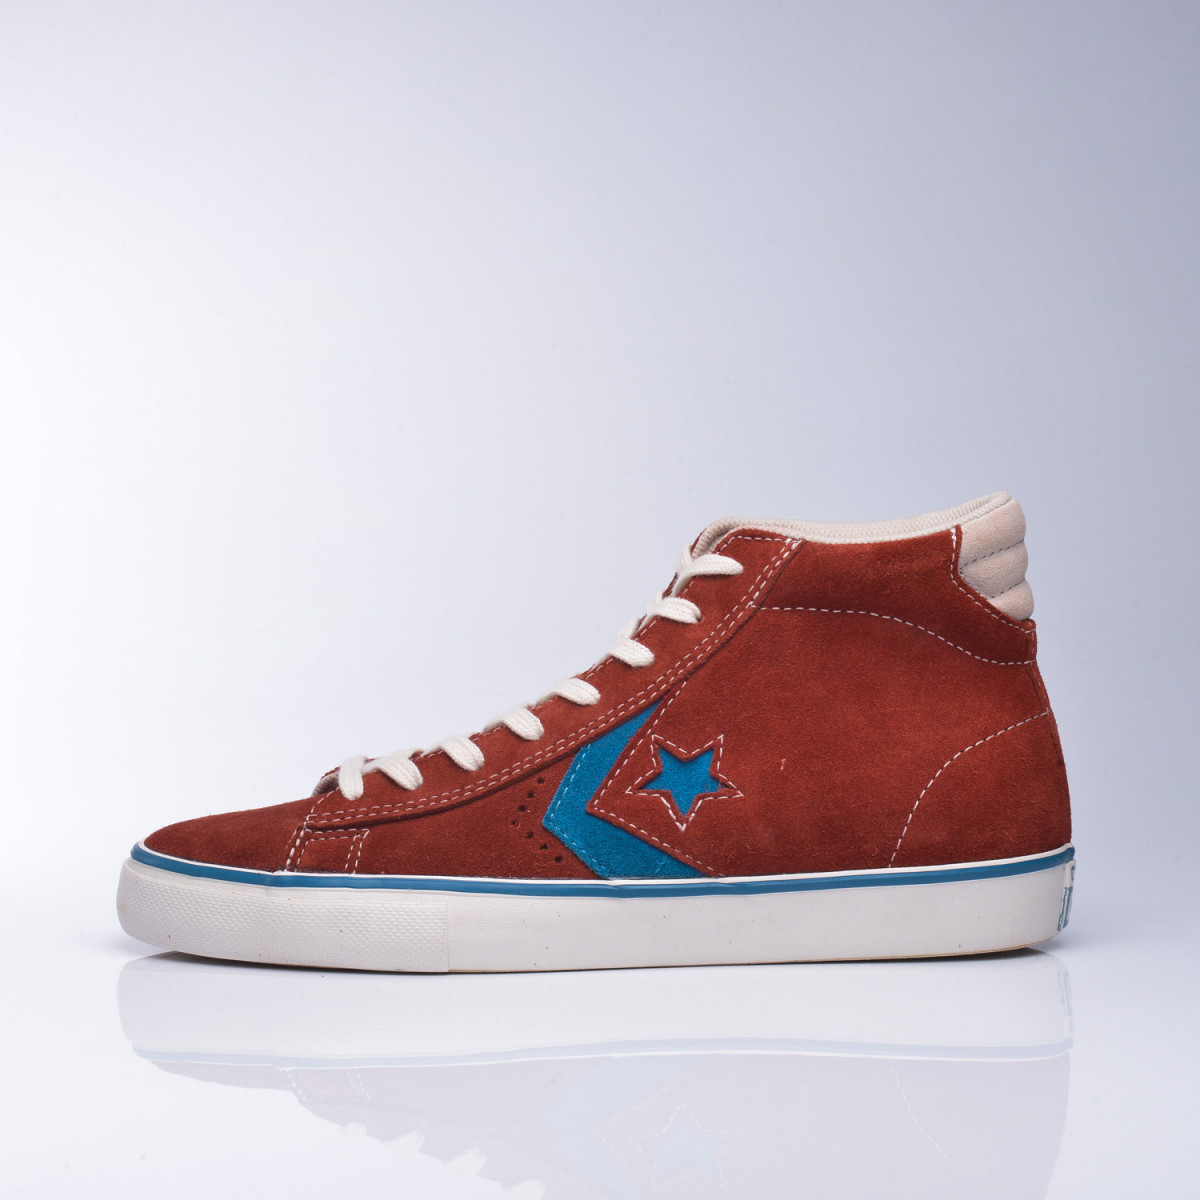 converse pro leather mujer